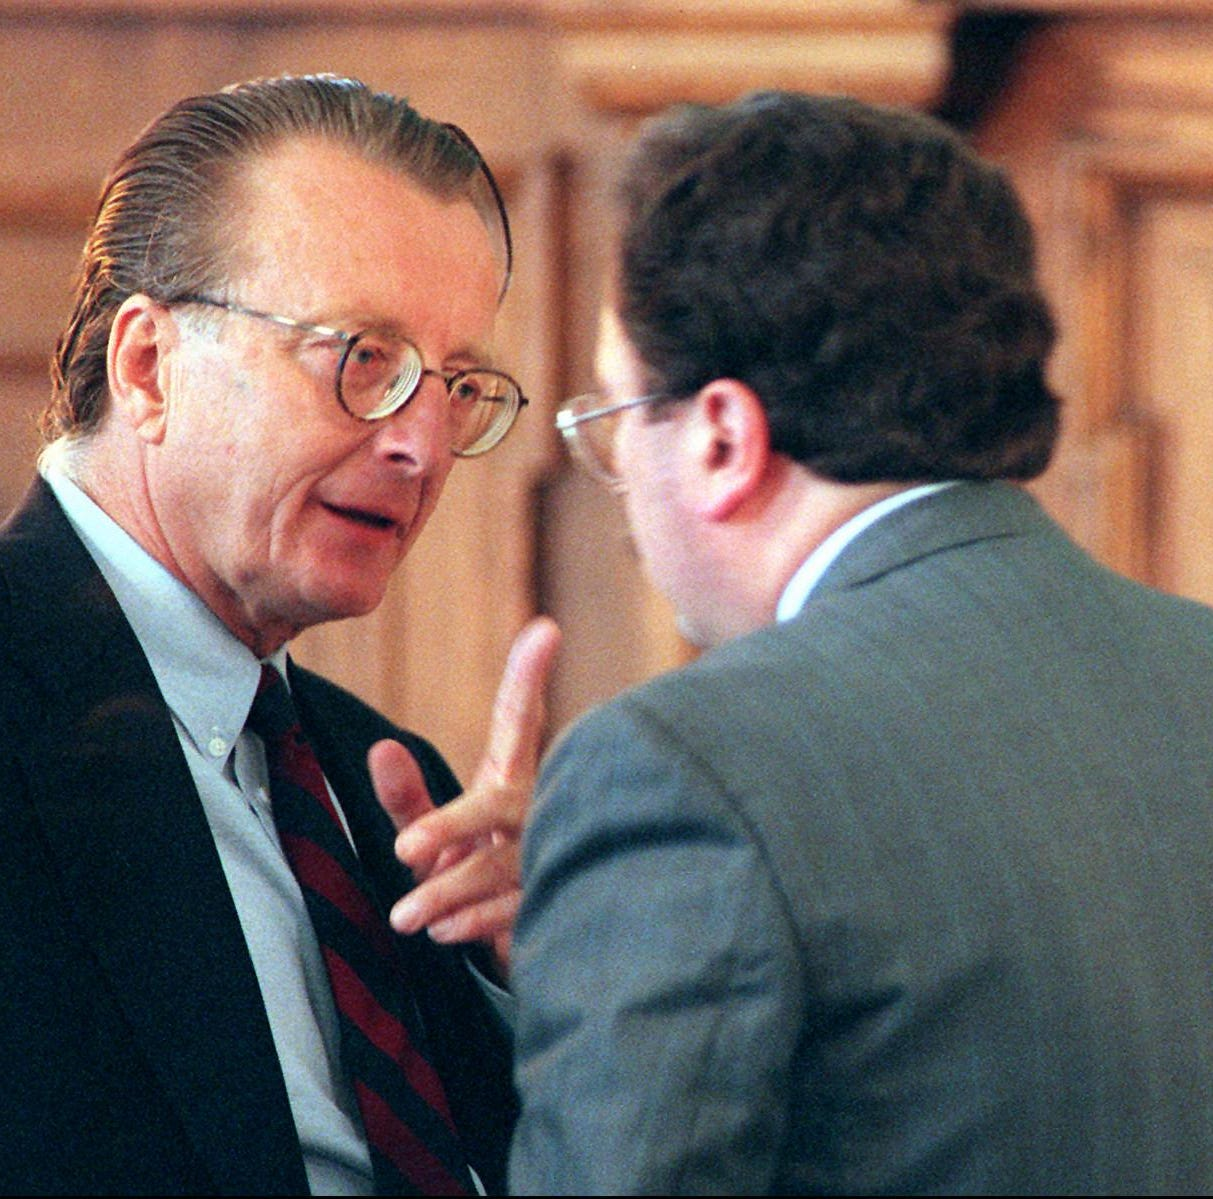 Felix Lapine, one of Rochester's best-known defense lawyers, dies at age 77